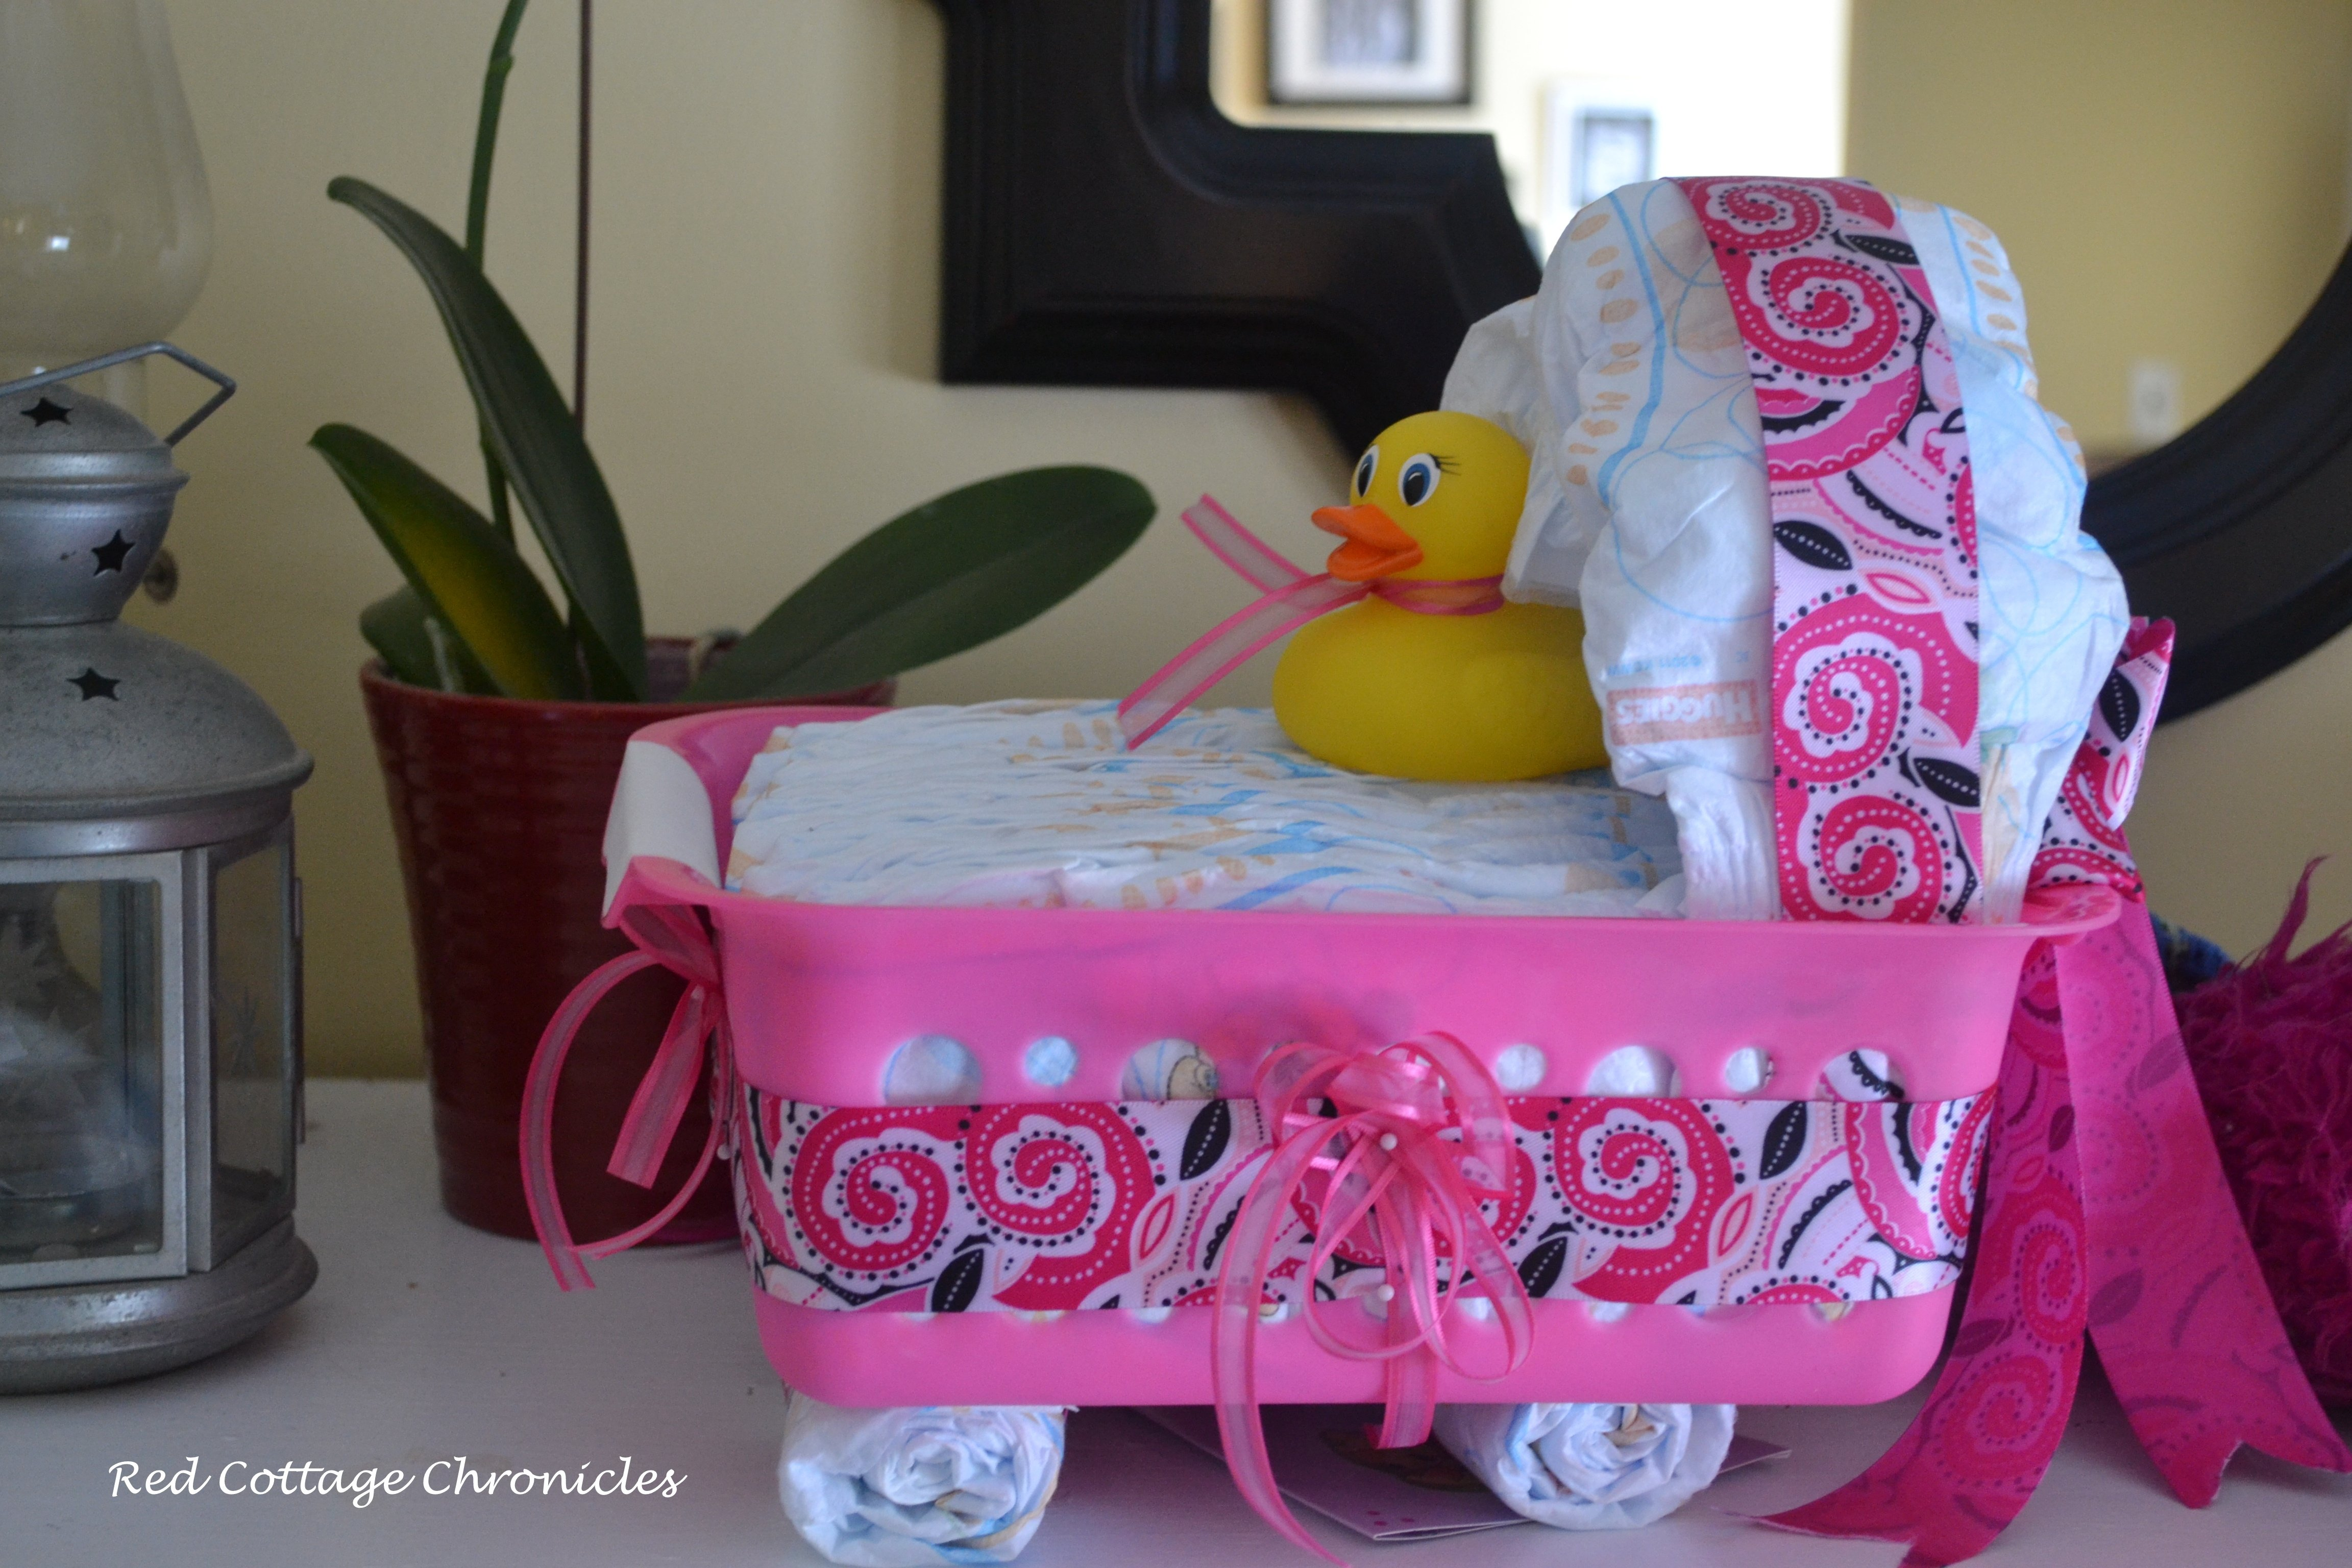 10 Spectacular Cheap Baby Shower Gift Ideas unique baby shower gift came dma homes 22820 1